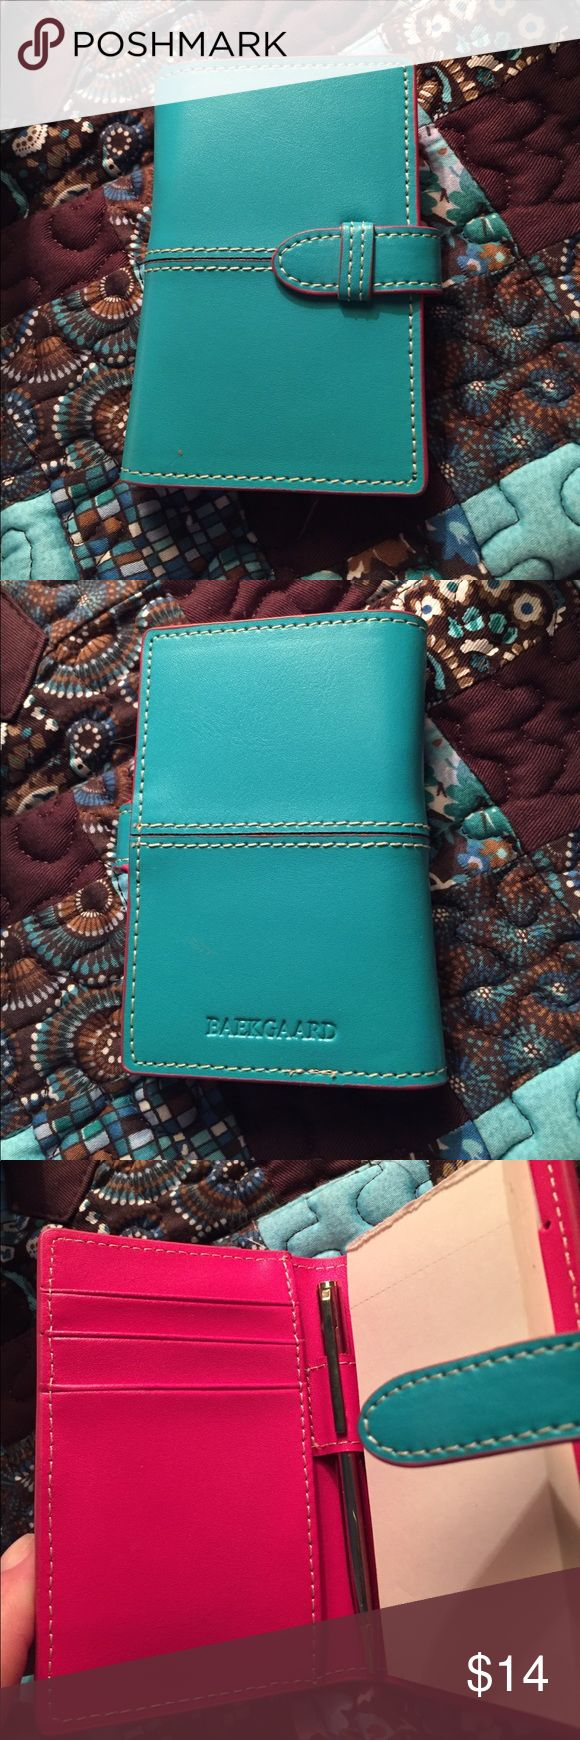 Leather Baekgaard Mini Notebook Adorable leather mini notebook for purse or pocket - Leather - Turquoise and pink. Used a couple prices of paper. Refills available online since this will last a long time 😊 Vera Bradley Other